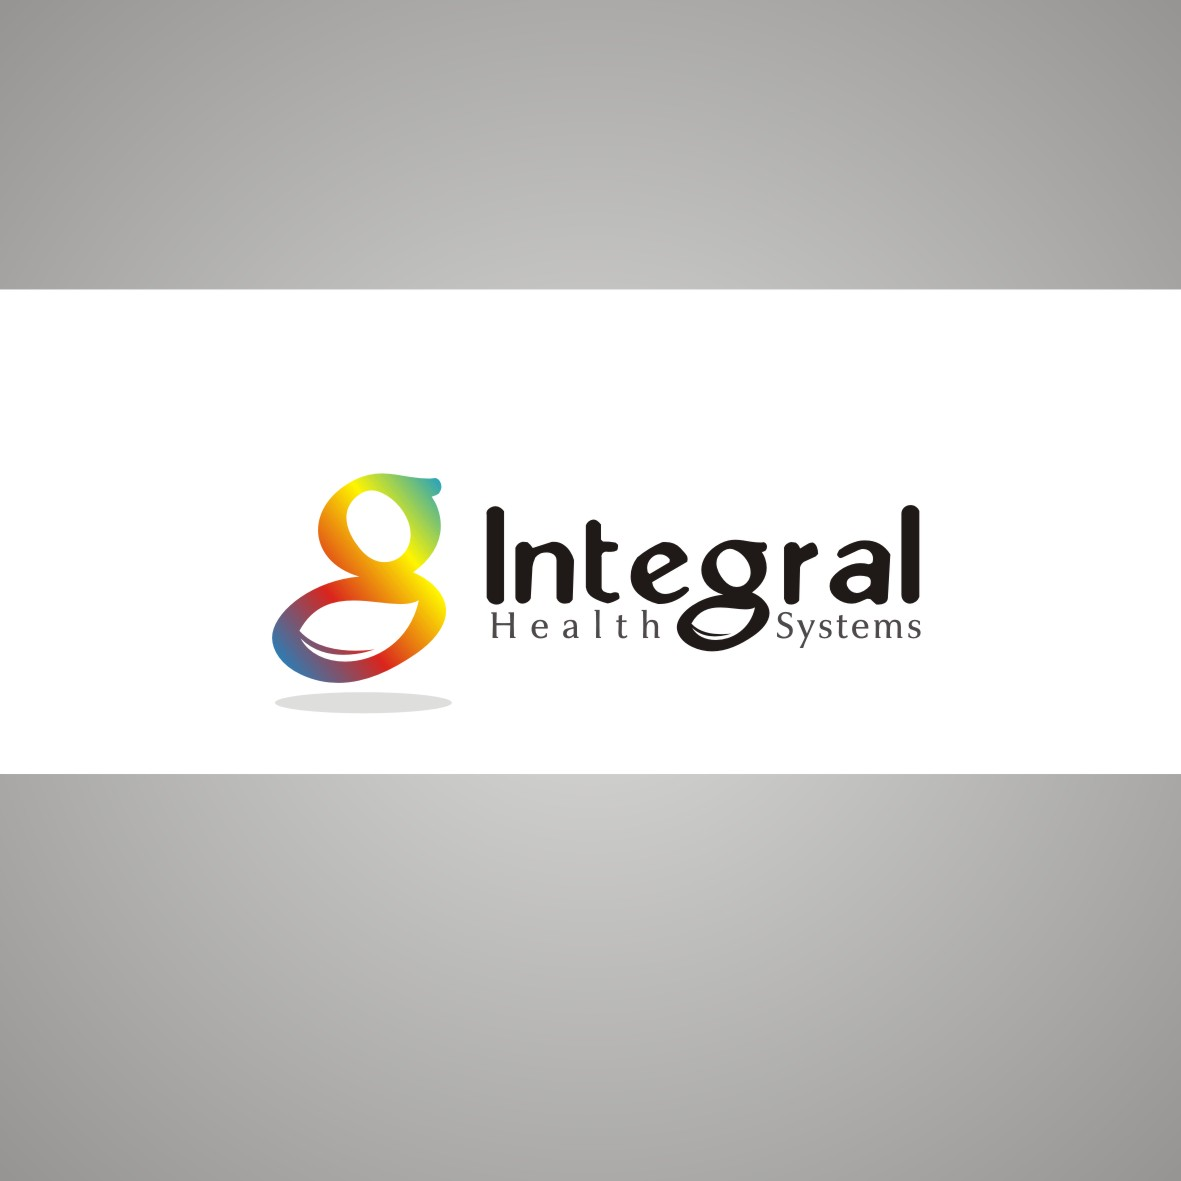 Logo Design by arteo_design - Entry No. 89 in the Logo Design Contest Unique Logo Design Wanted for Integral Health Systems.